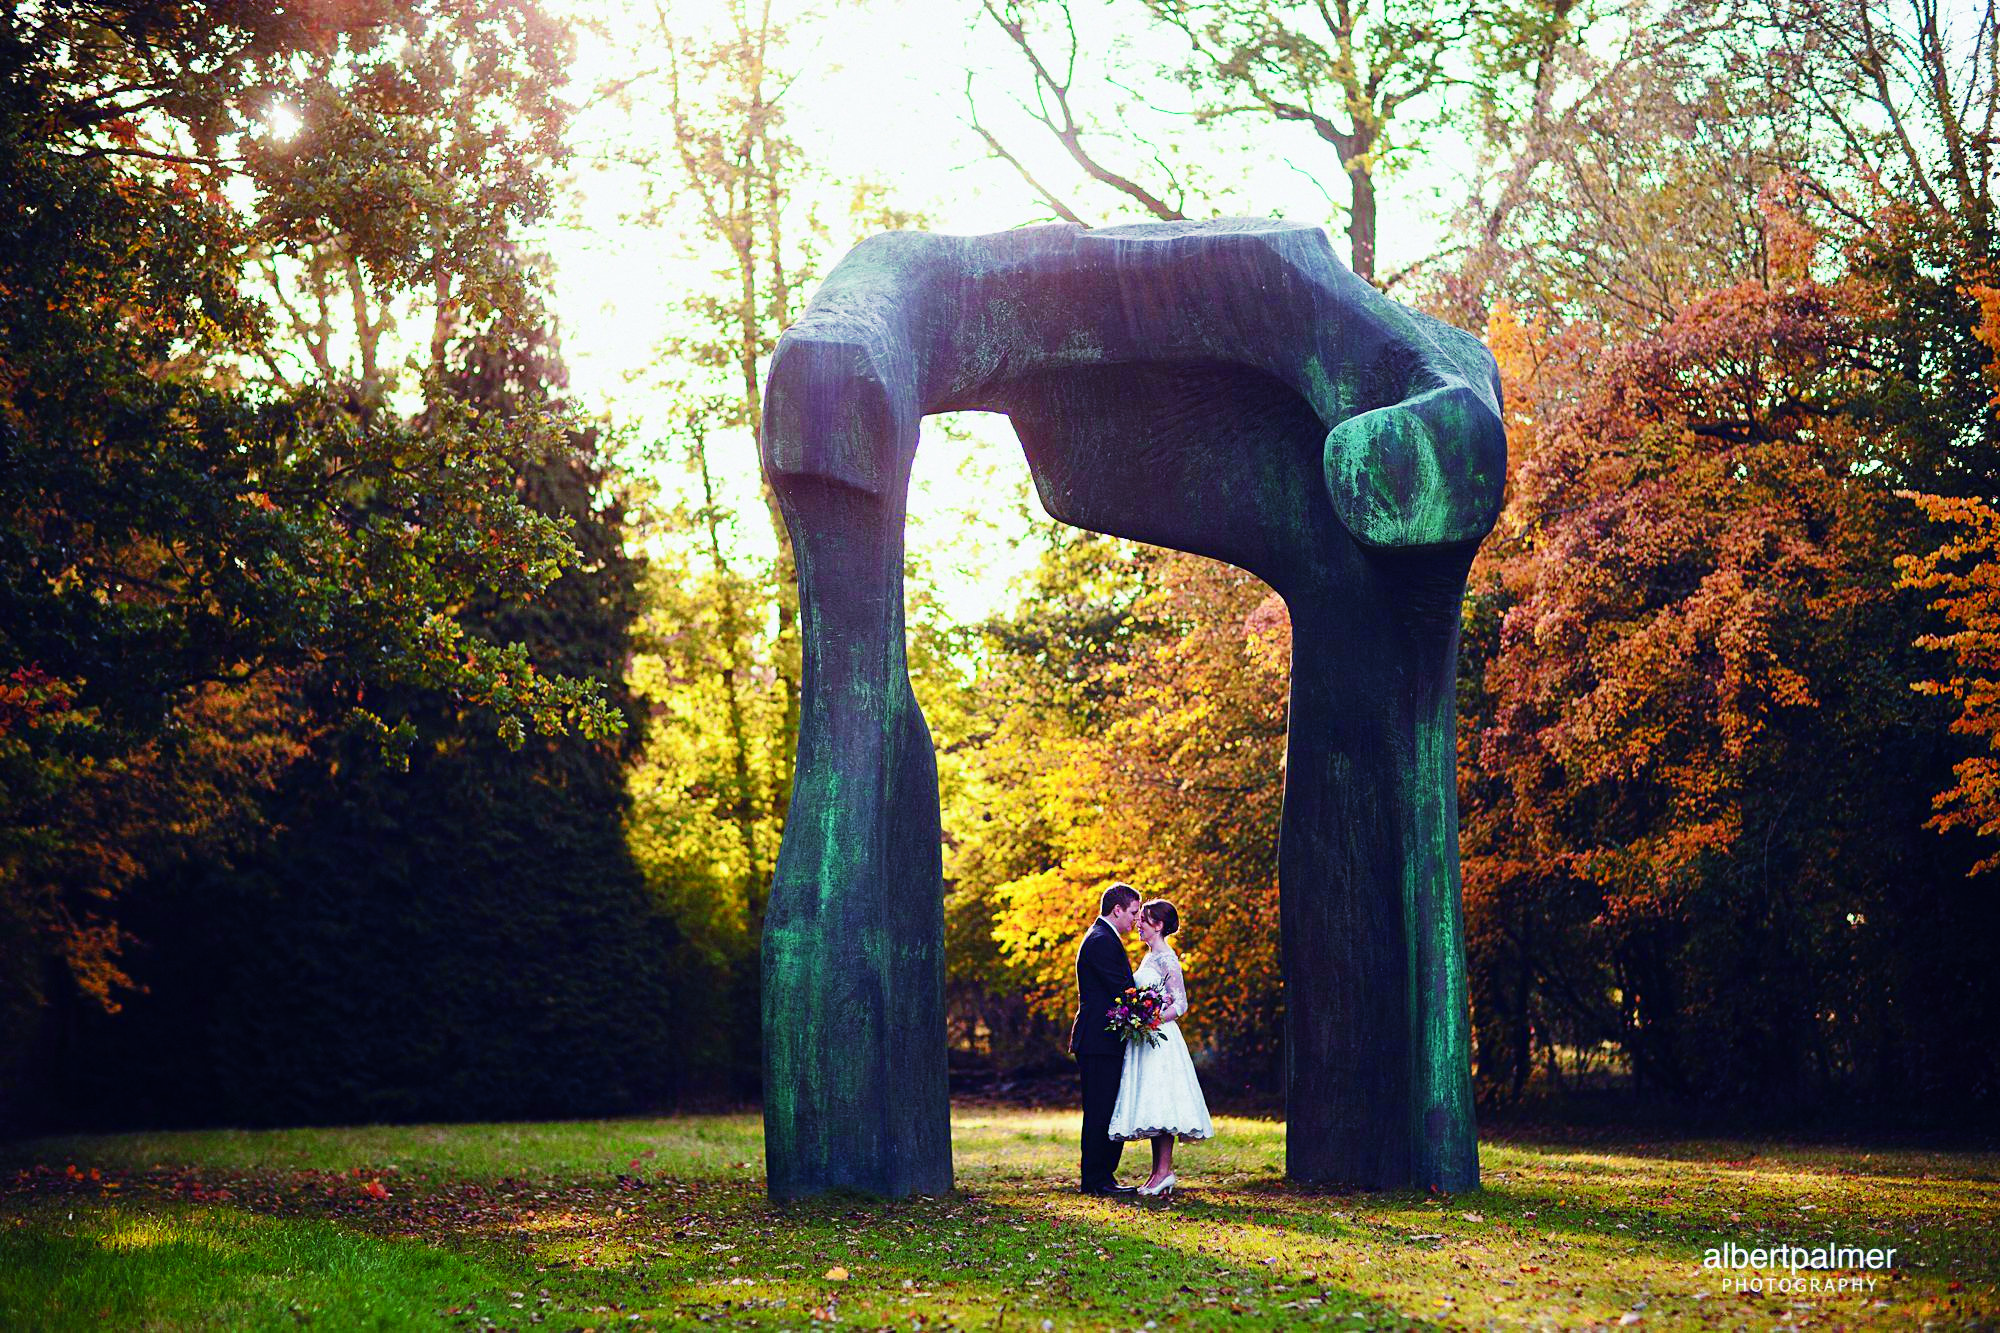 Married under 'The Arch'